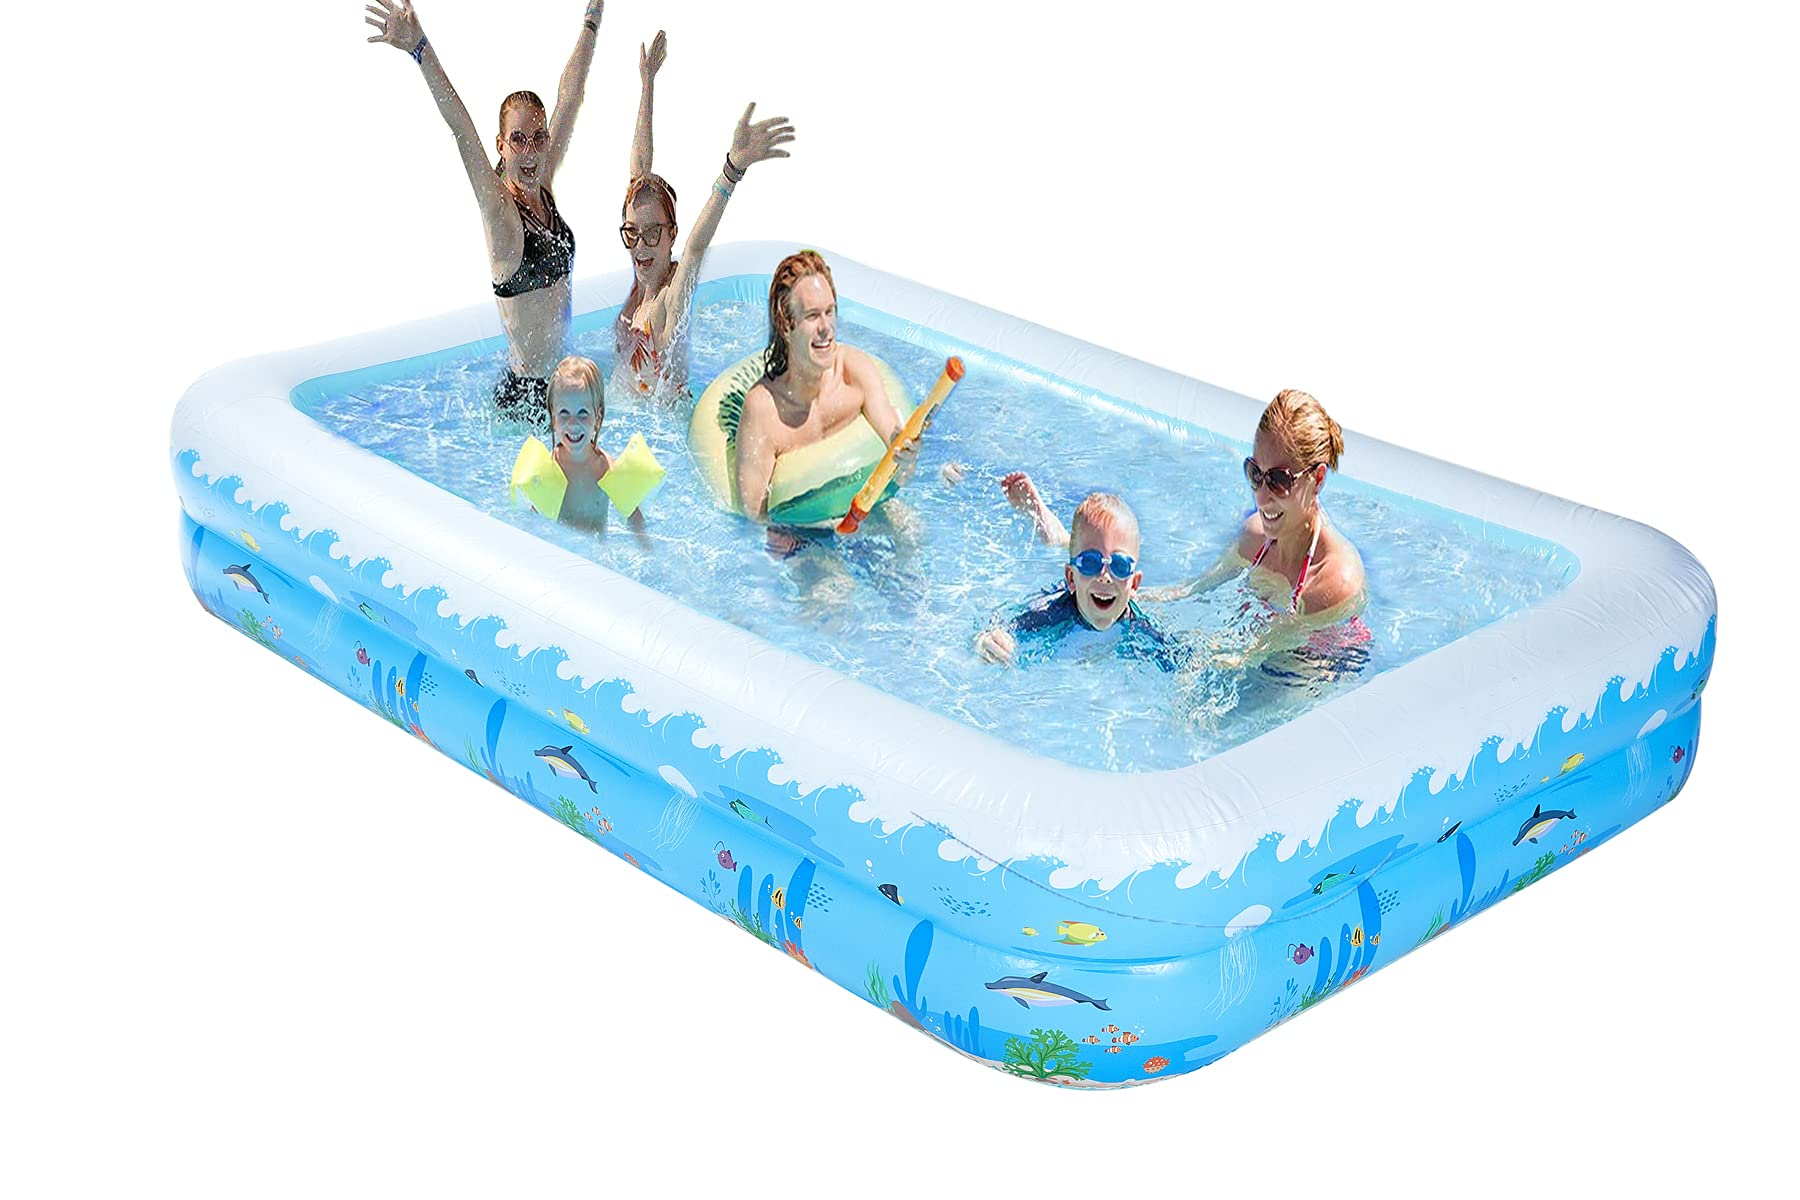 Inflatable Pools Large Swimming Pool for Adults Kids in Backyard Garden Outdoor